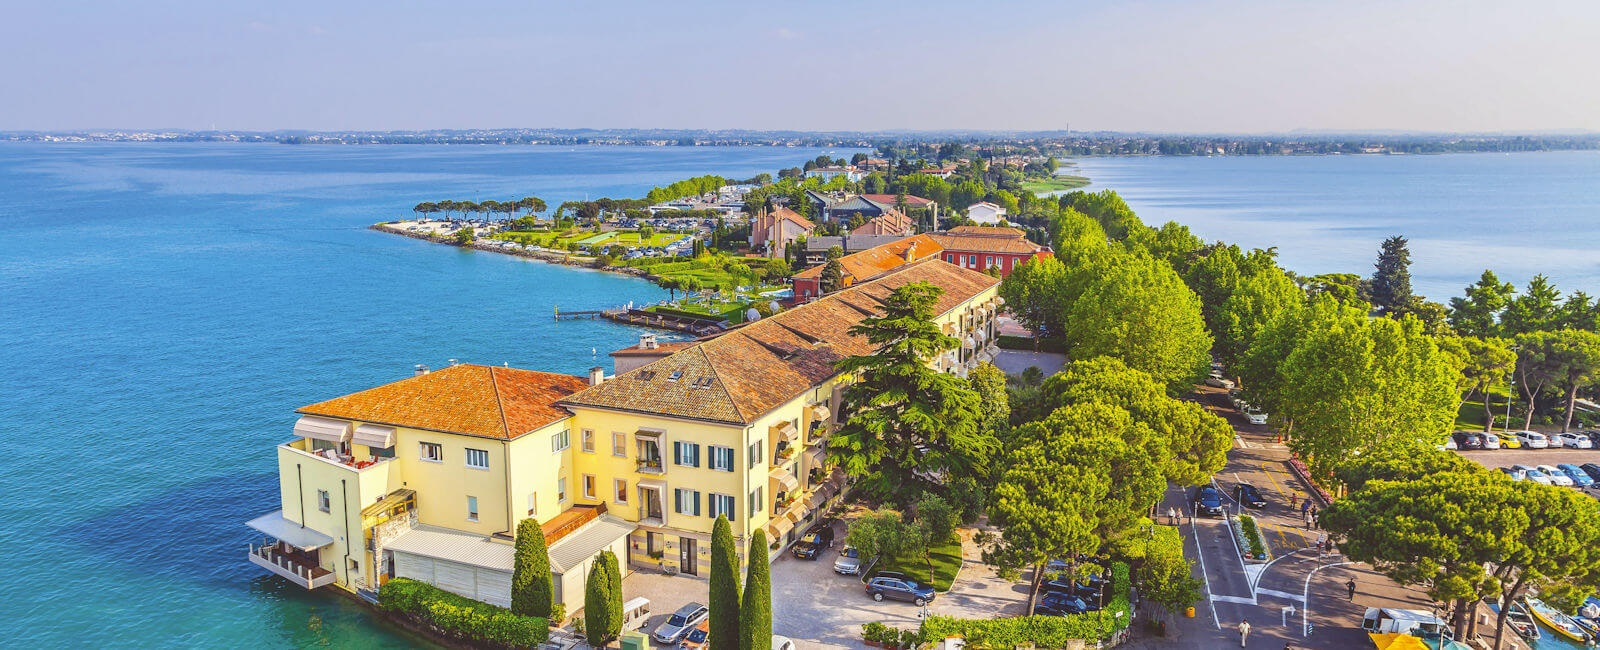 view of sirmione, lake garda